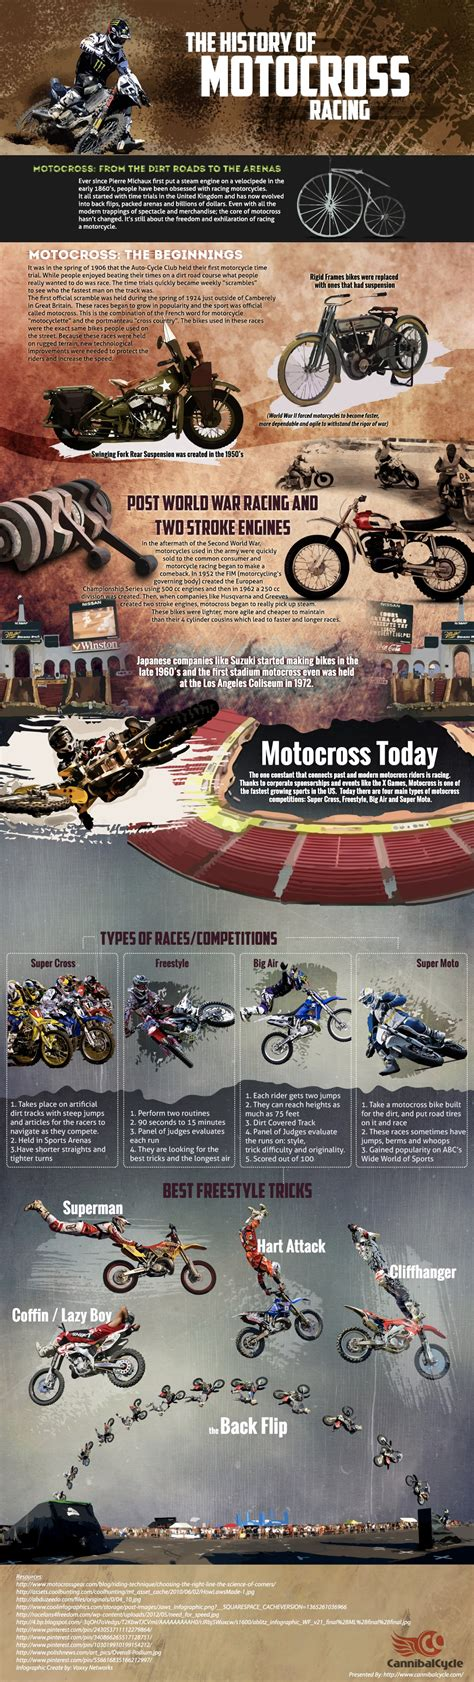 History Of Motocross Racing Infographic